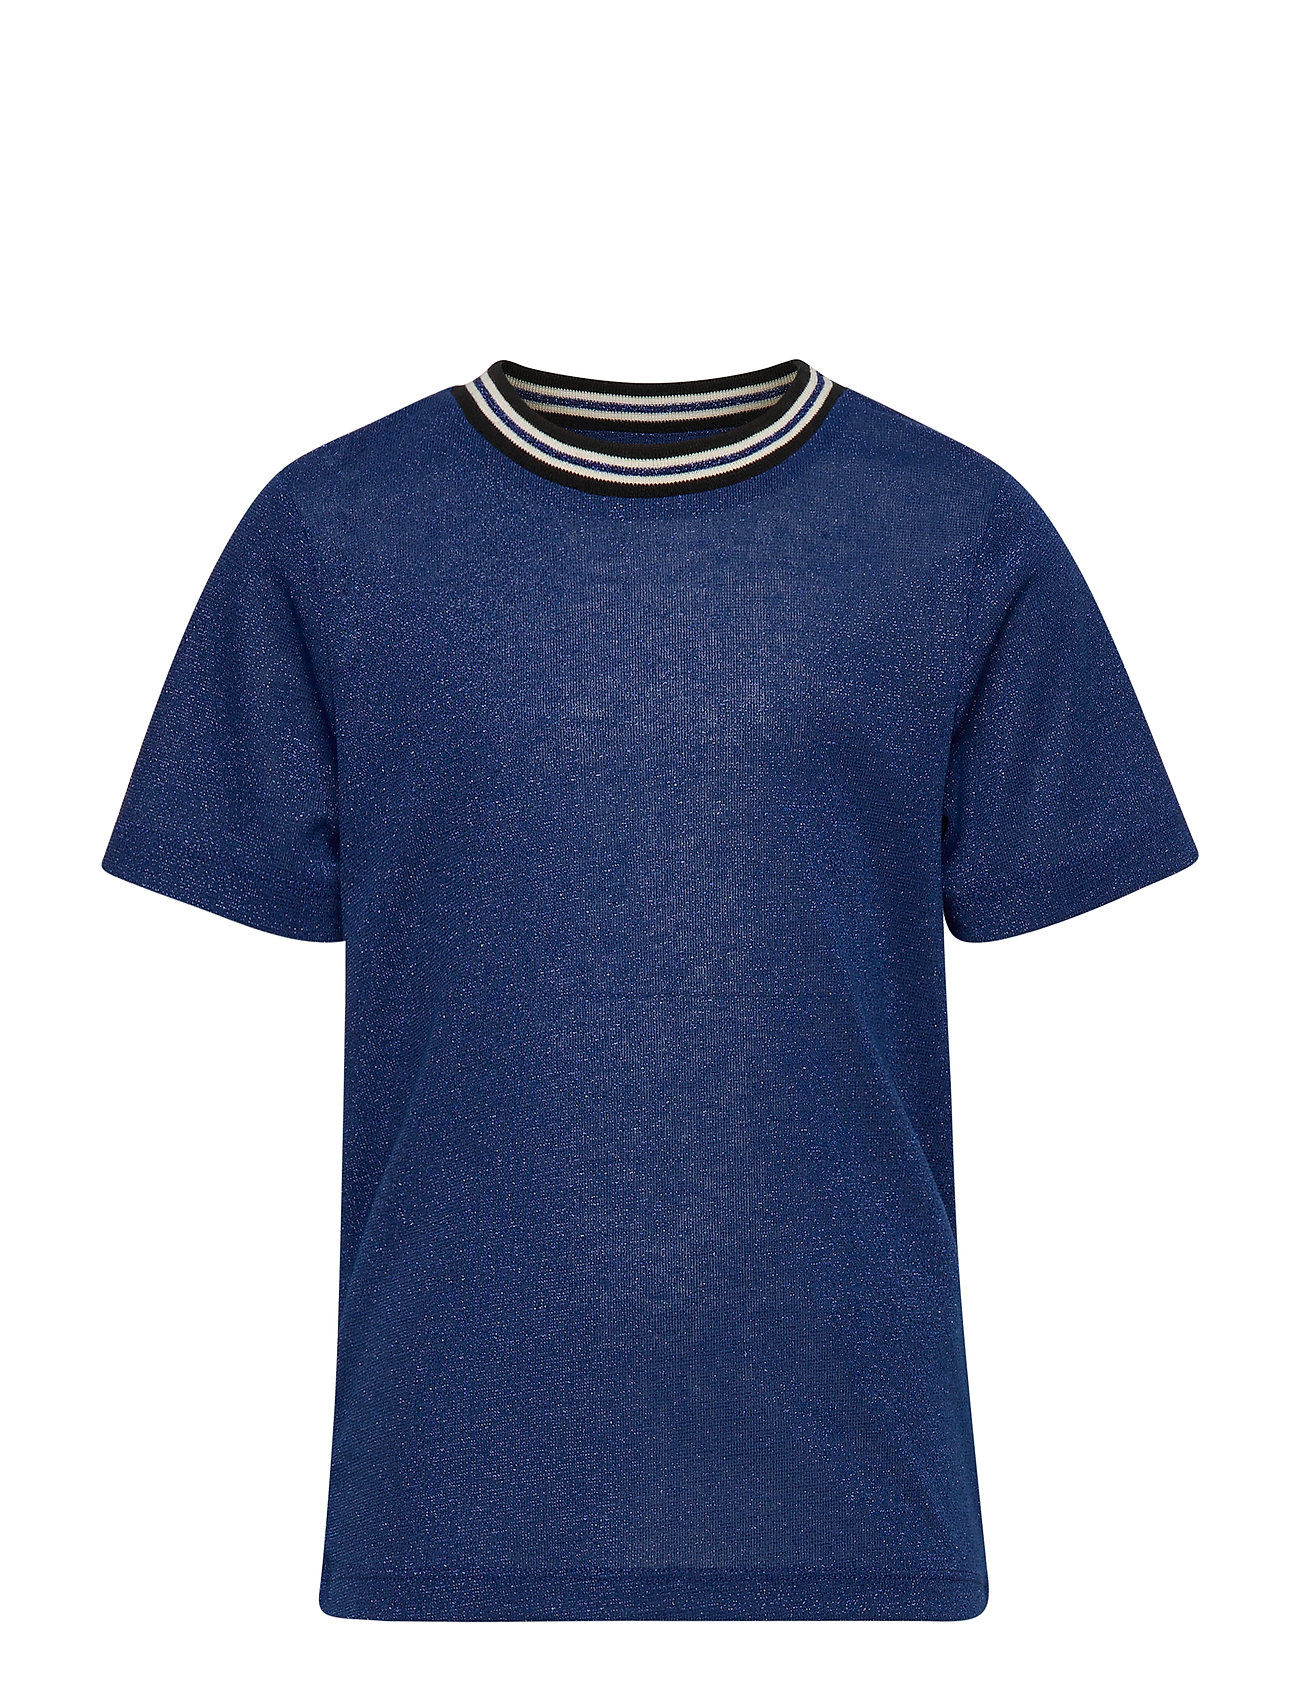 Kids Only KONSILVERY S/S RIB TOP JRS - ROYAL BLUE